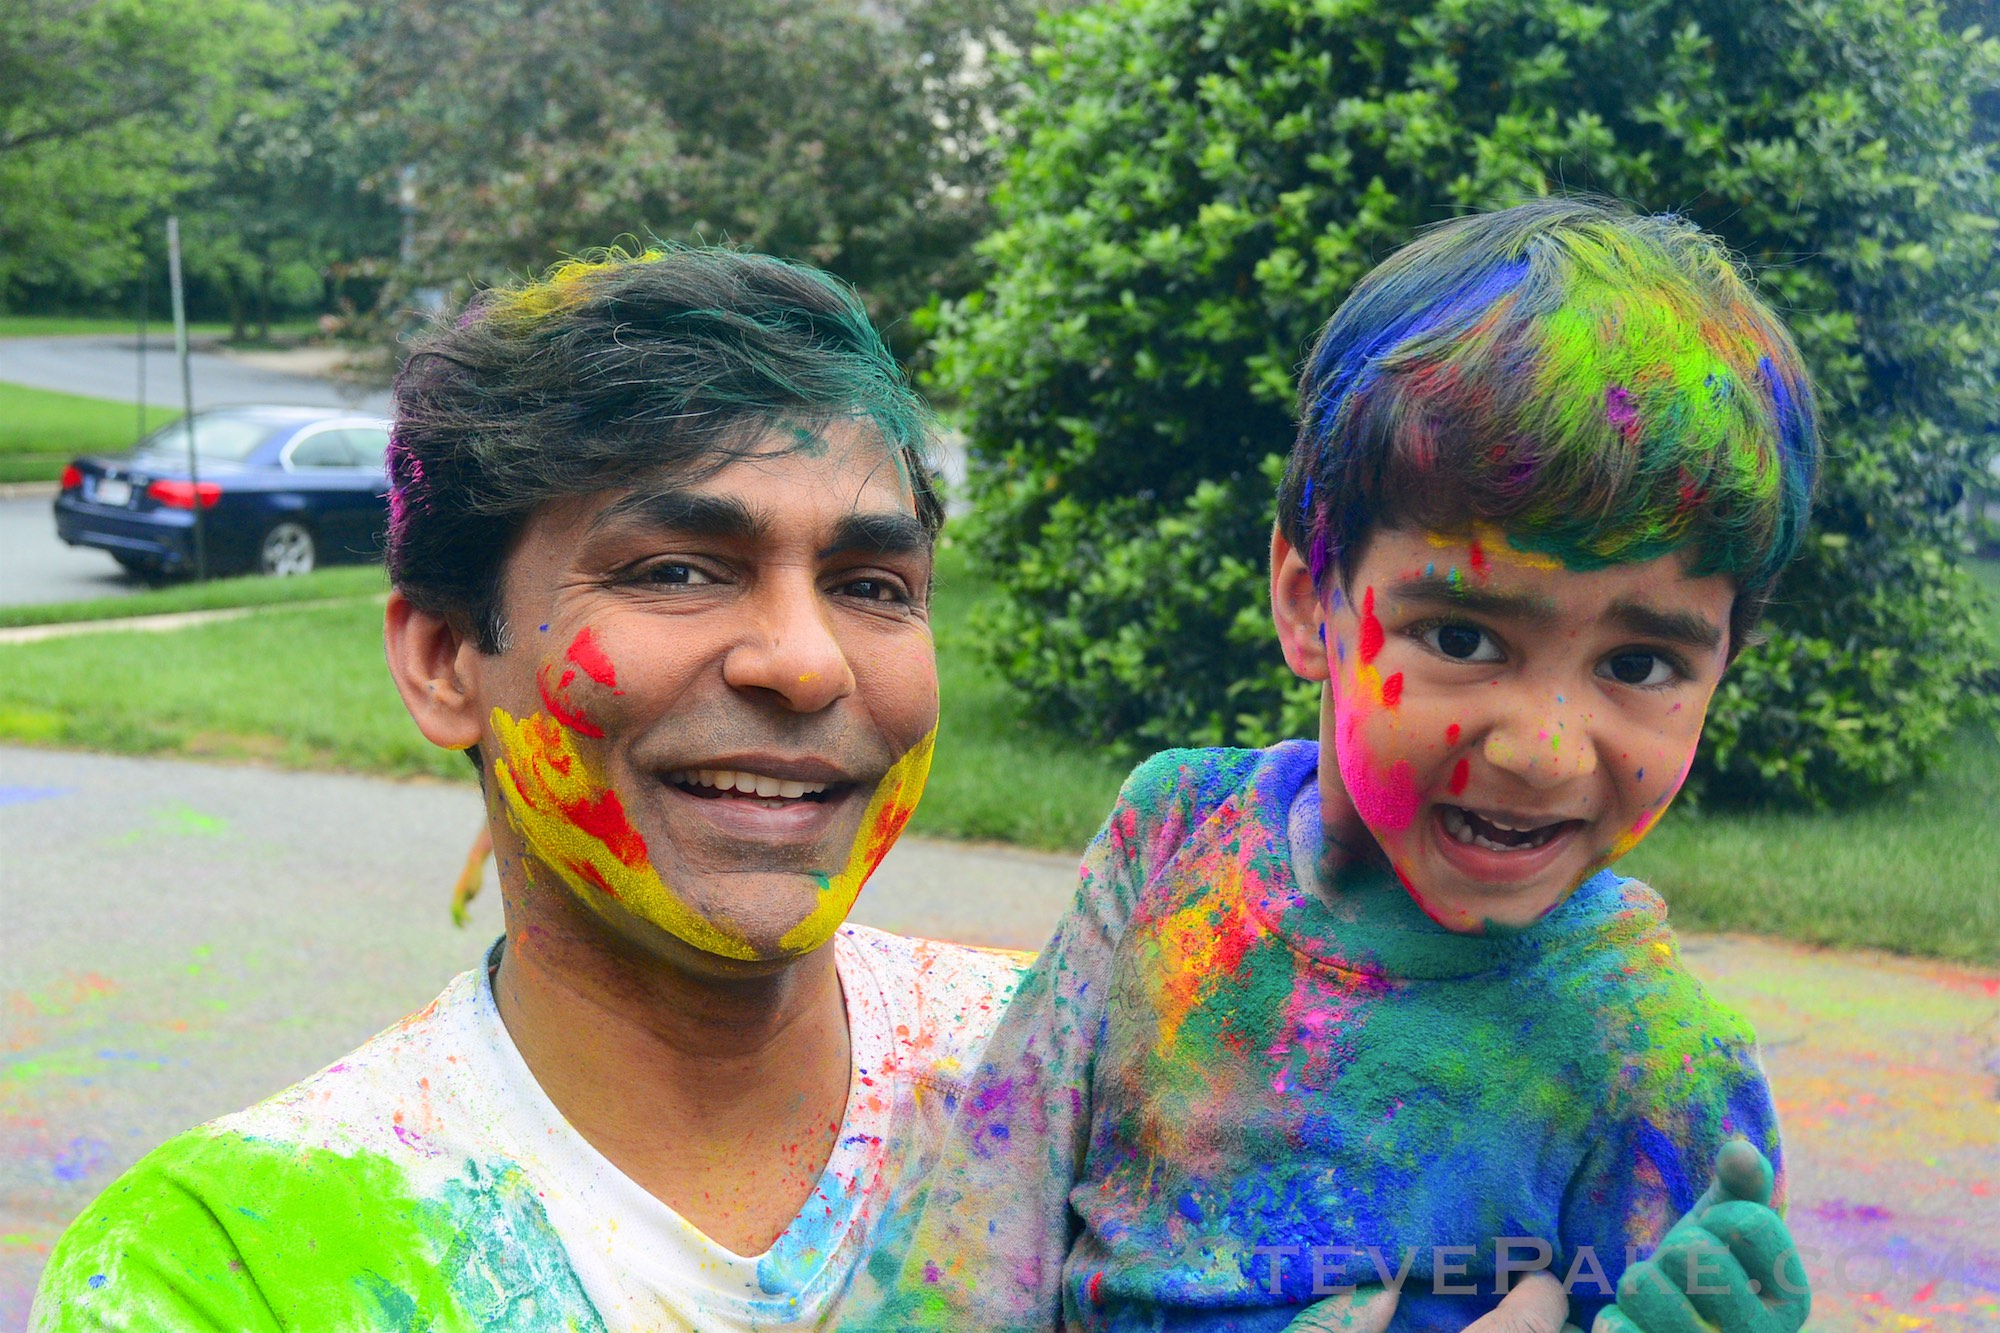 SKColorParty2016_051_DSC_0712ap-HD-WM.jpg